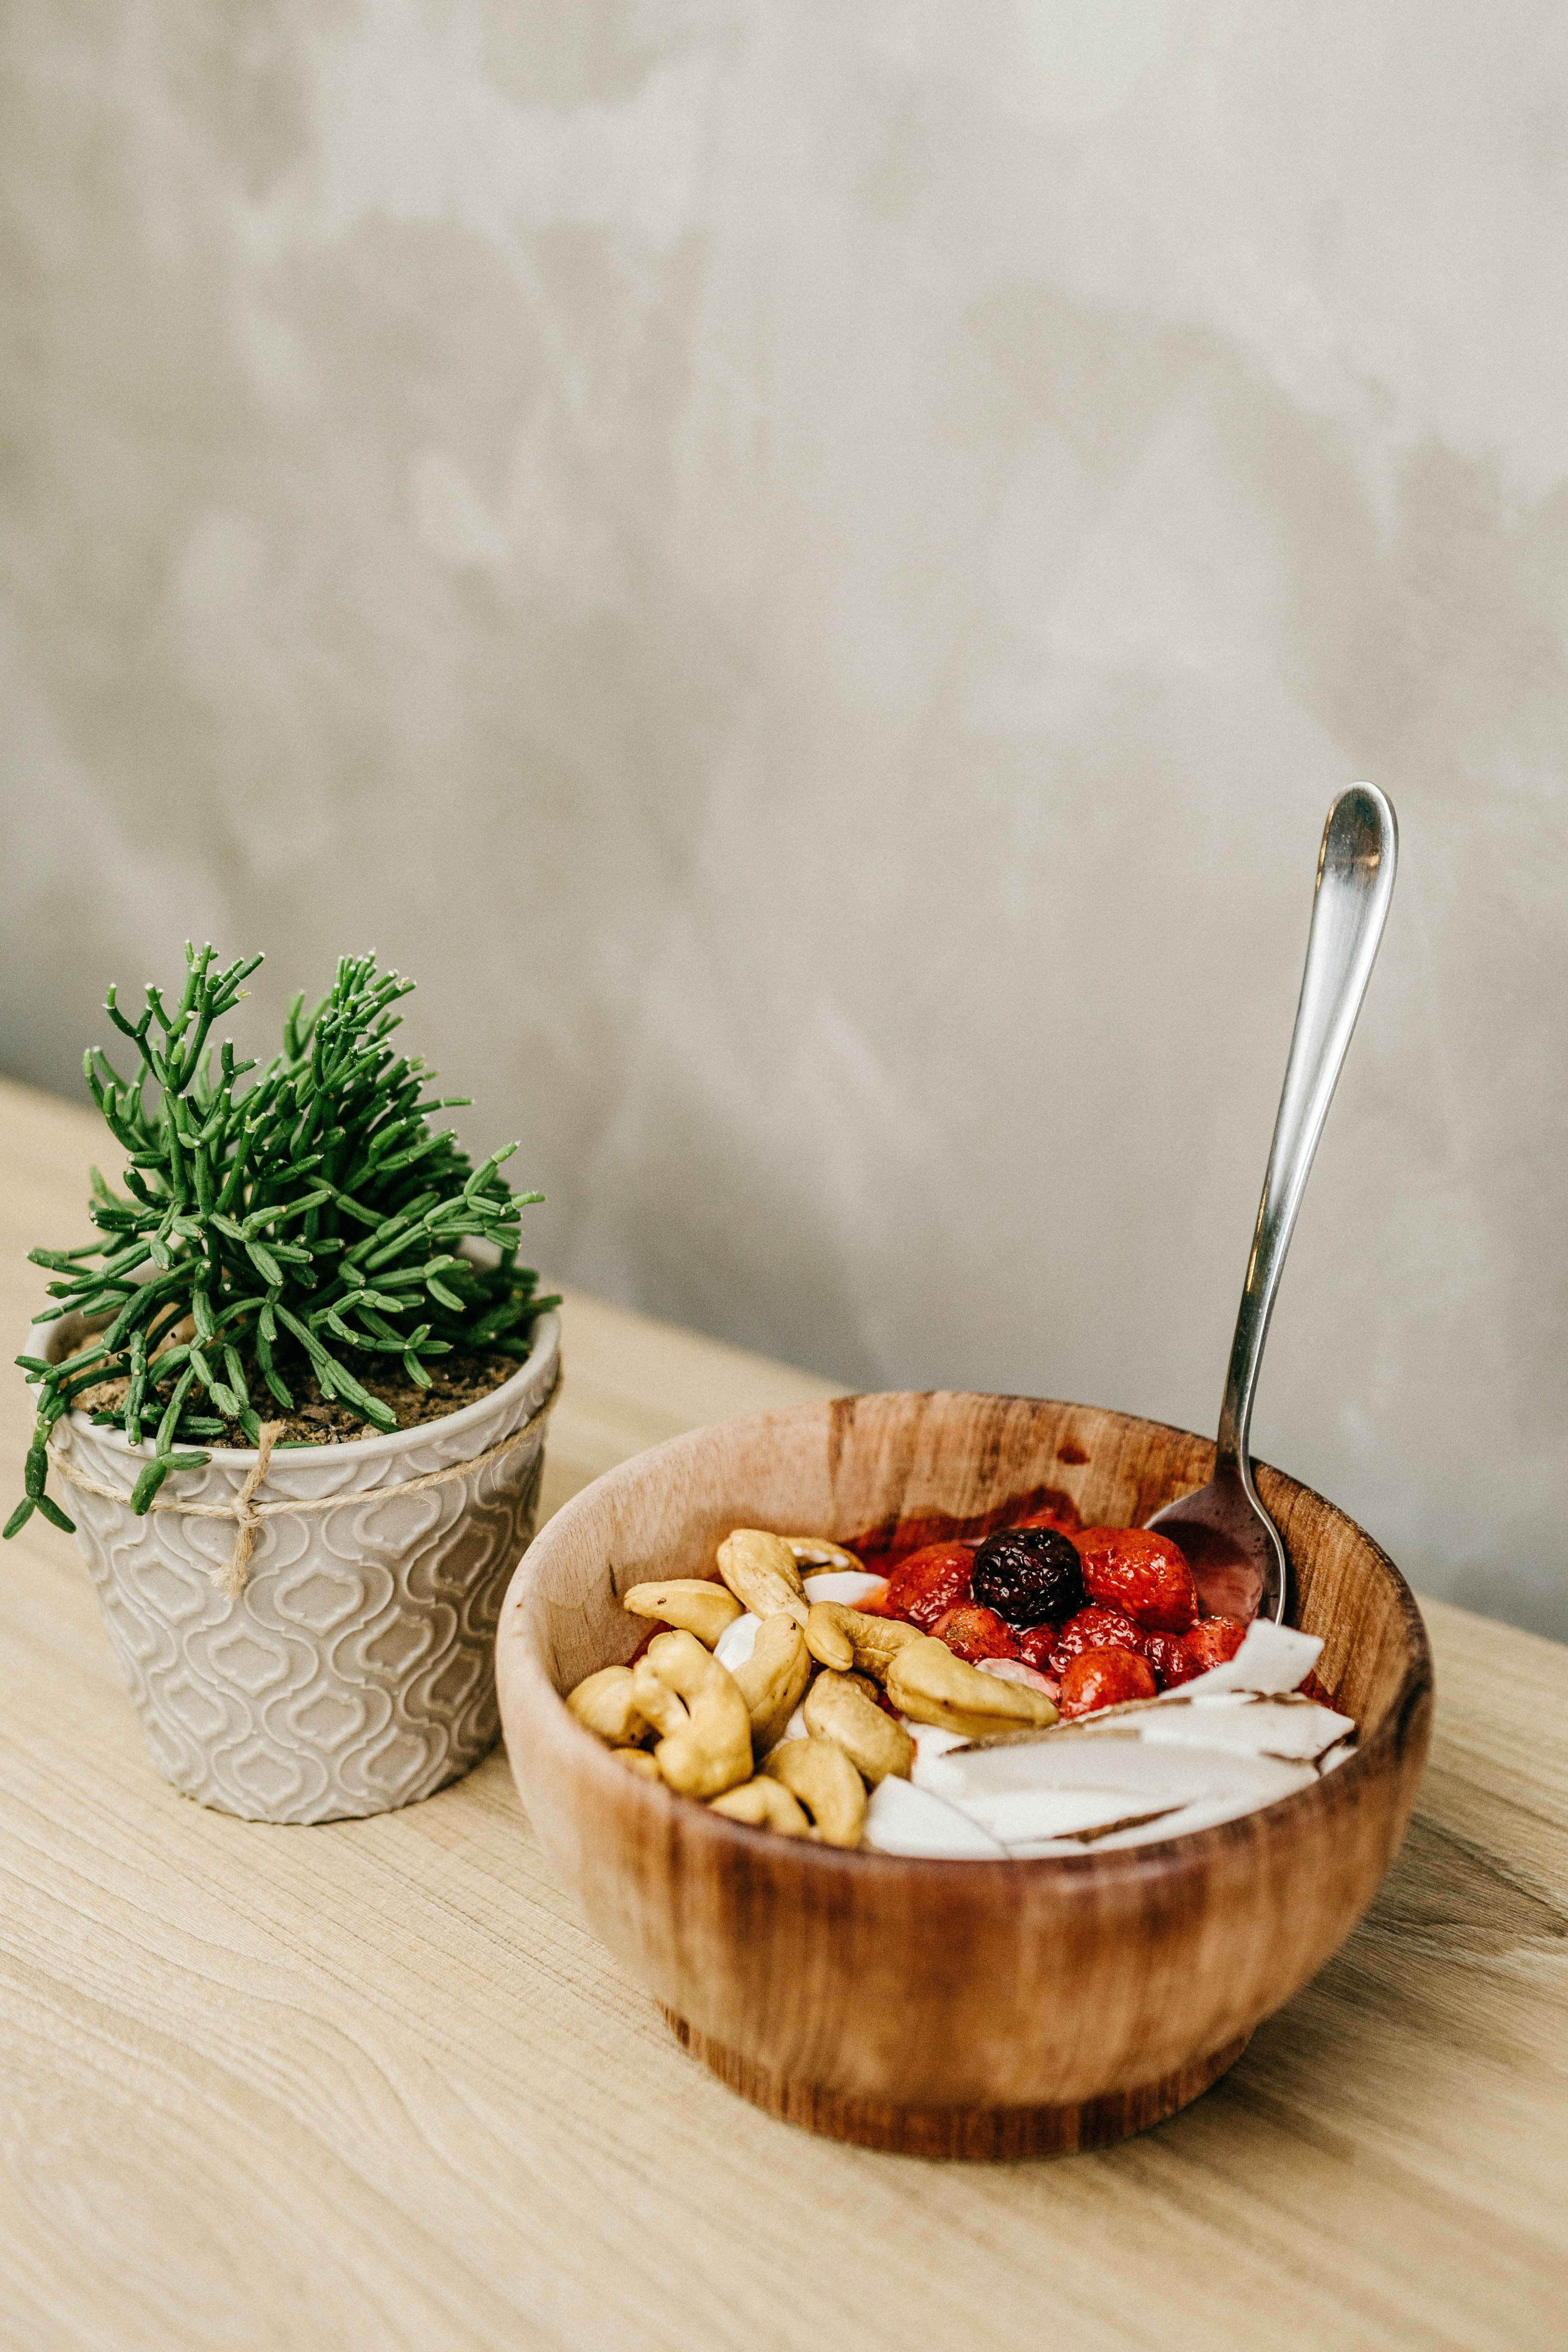 A photo of sliced berries and cashews in a wooden bowl   Source: Pexels